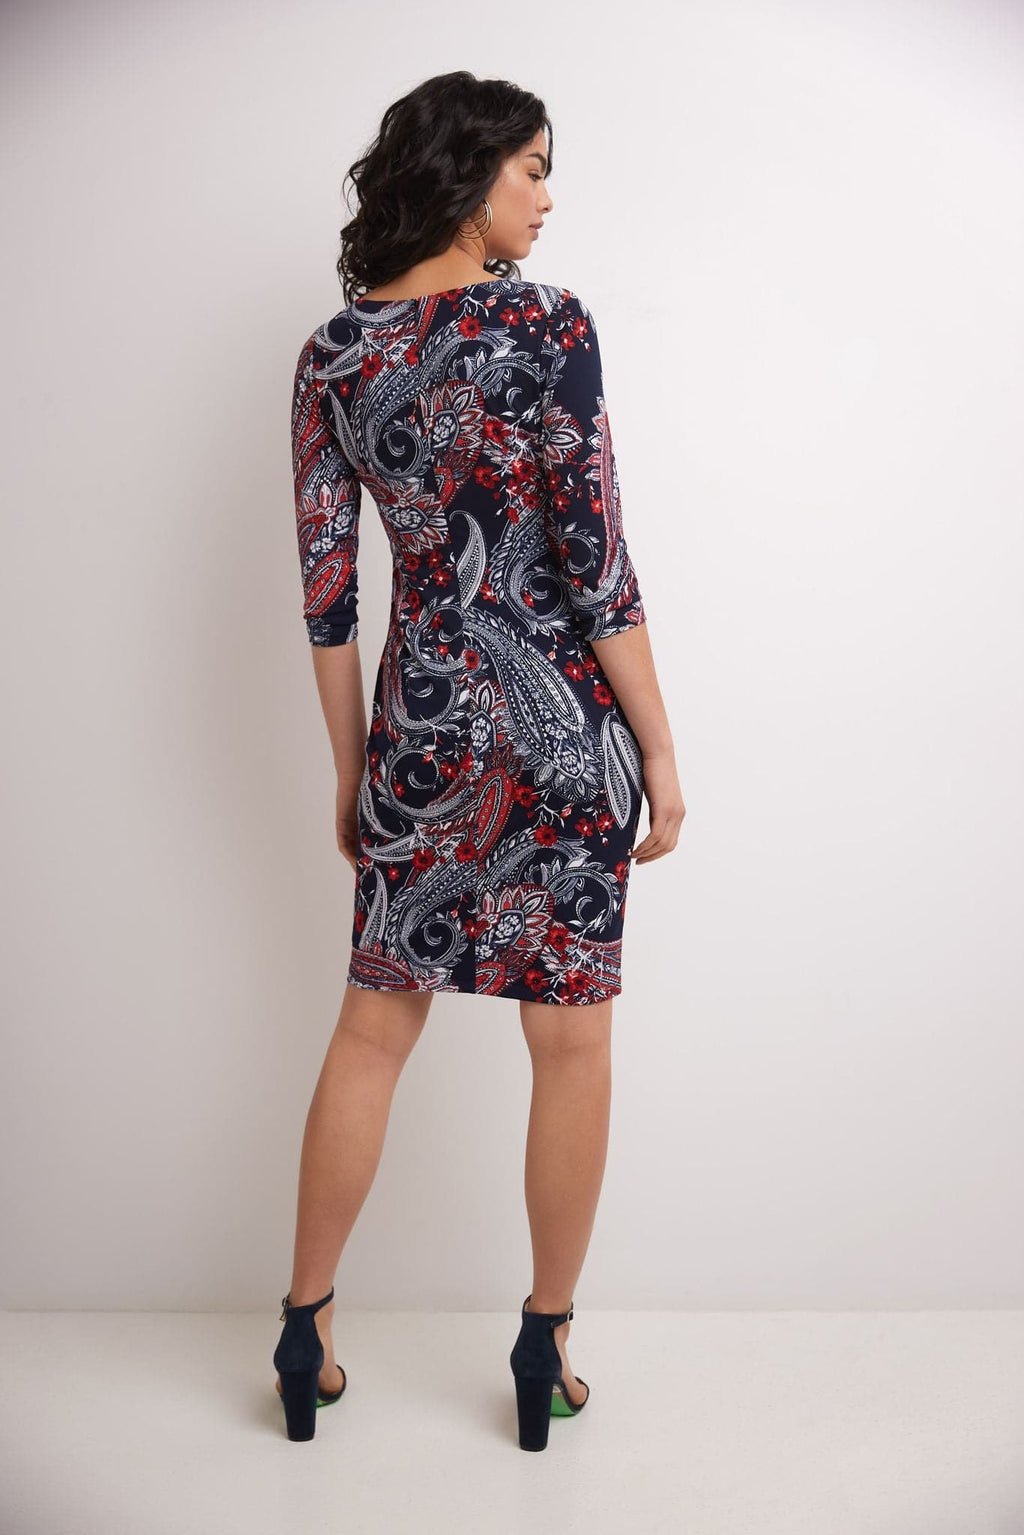 Sheath Dress for Work with 3/4 Sleeves